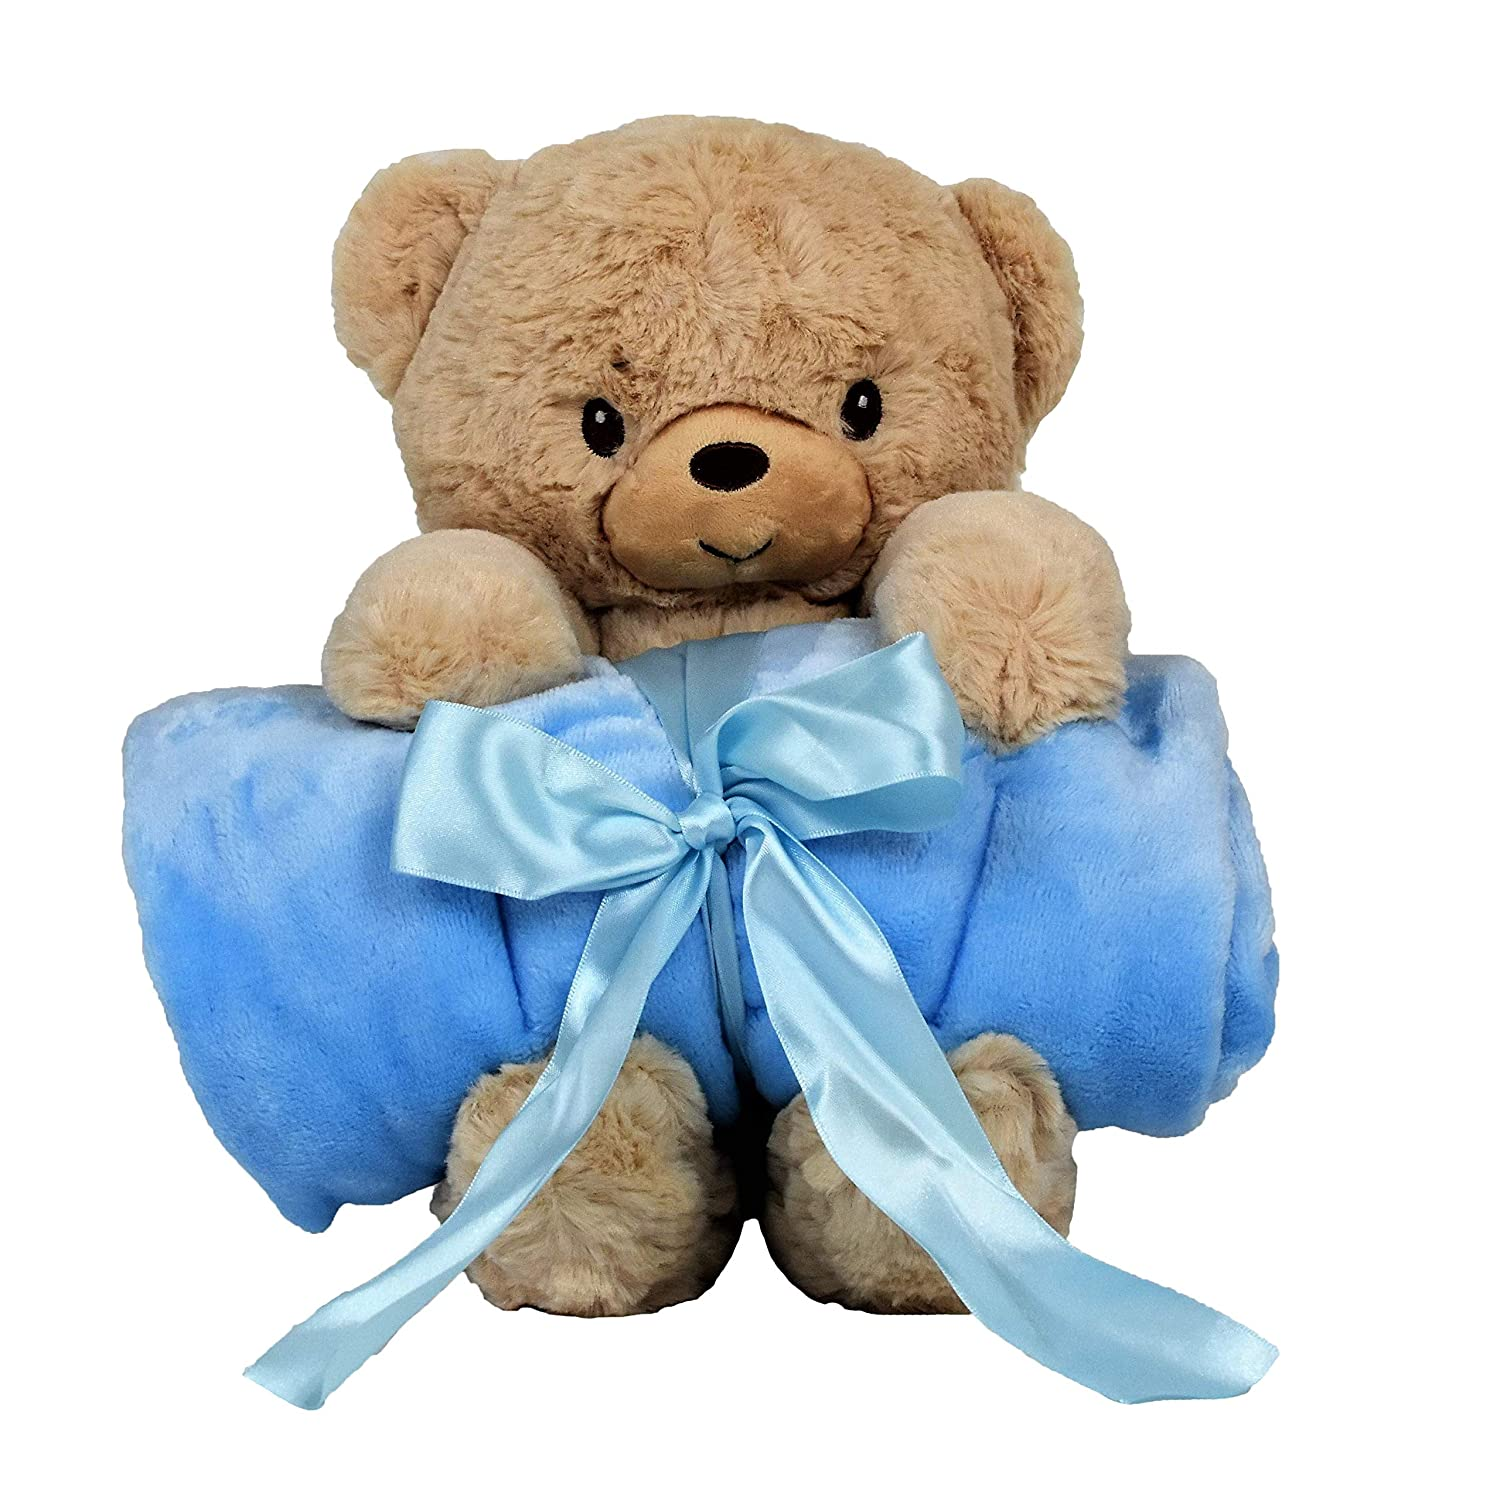 Blankie s Stuffed Animal Blanket Super Soft 37 x 30 Blue Baby Boy Blanket and Teddy Bear 2-in-1 Combo Perfect Teddy Bear Blanket Baby Shower Gift for Boys